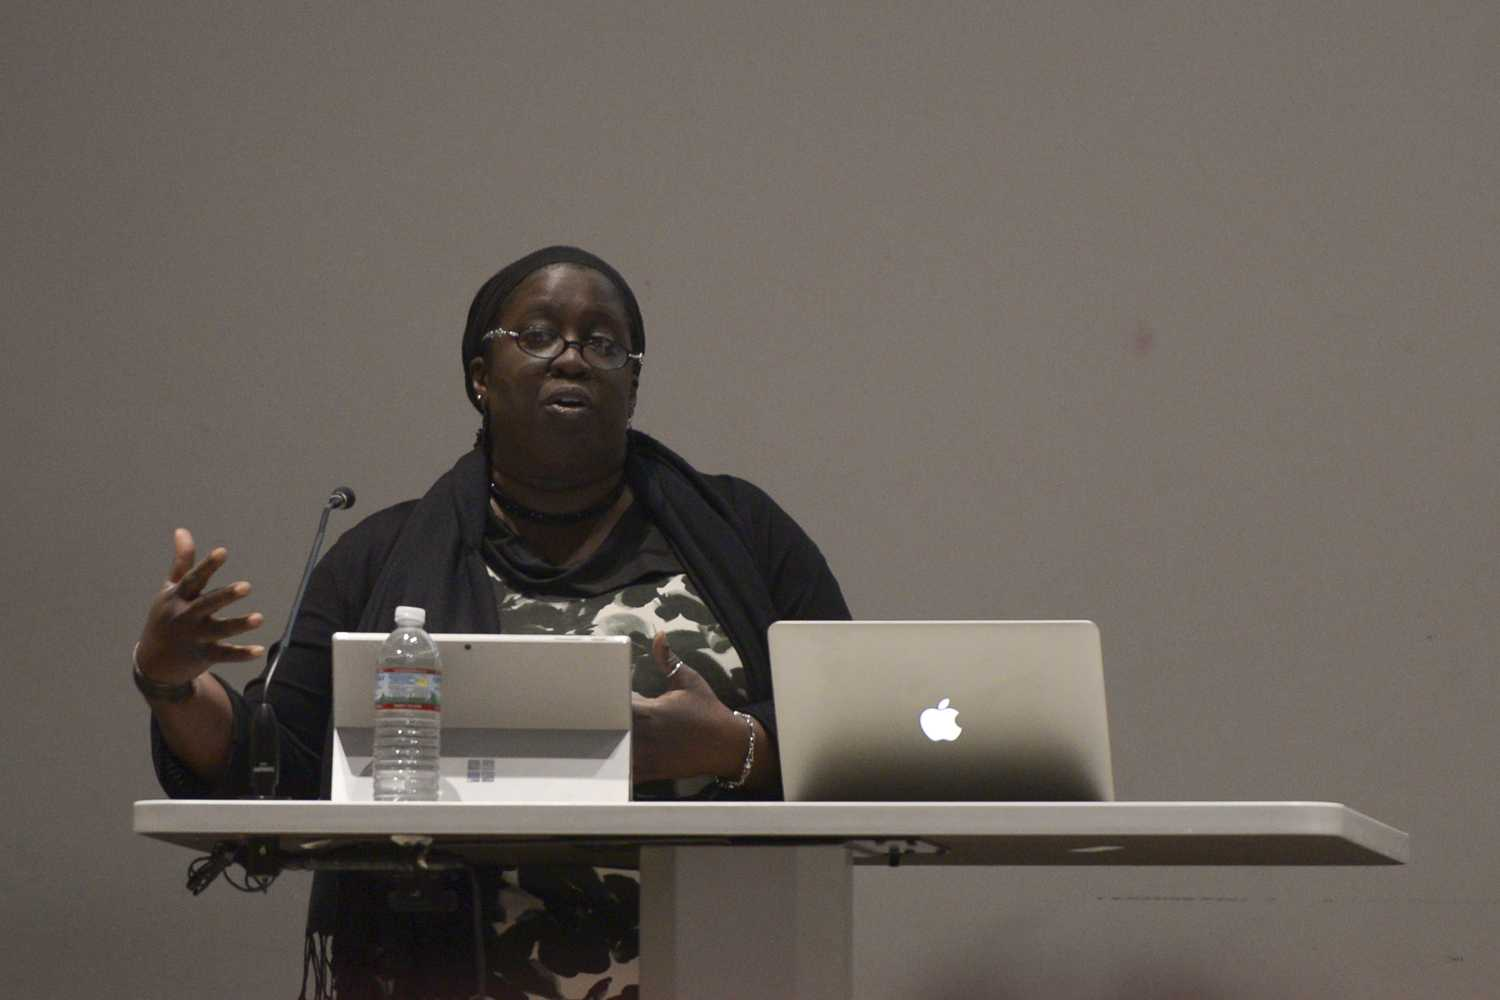 Jacqueline Patterson, the director of the NAACP Environmental and Climate Justice Program, advocates for reducing harmful emissions and advancing energy efficiency and clean energy at the Environmental Justice is Racial Justice is Gender Justice event hosted by Unkind Institute in the Frick Fine Arts Building. (Photo by Sarah Cutshall | Staff Photographer)